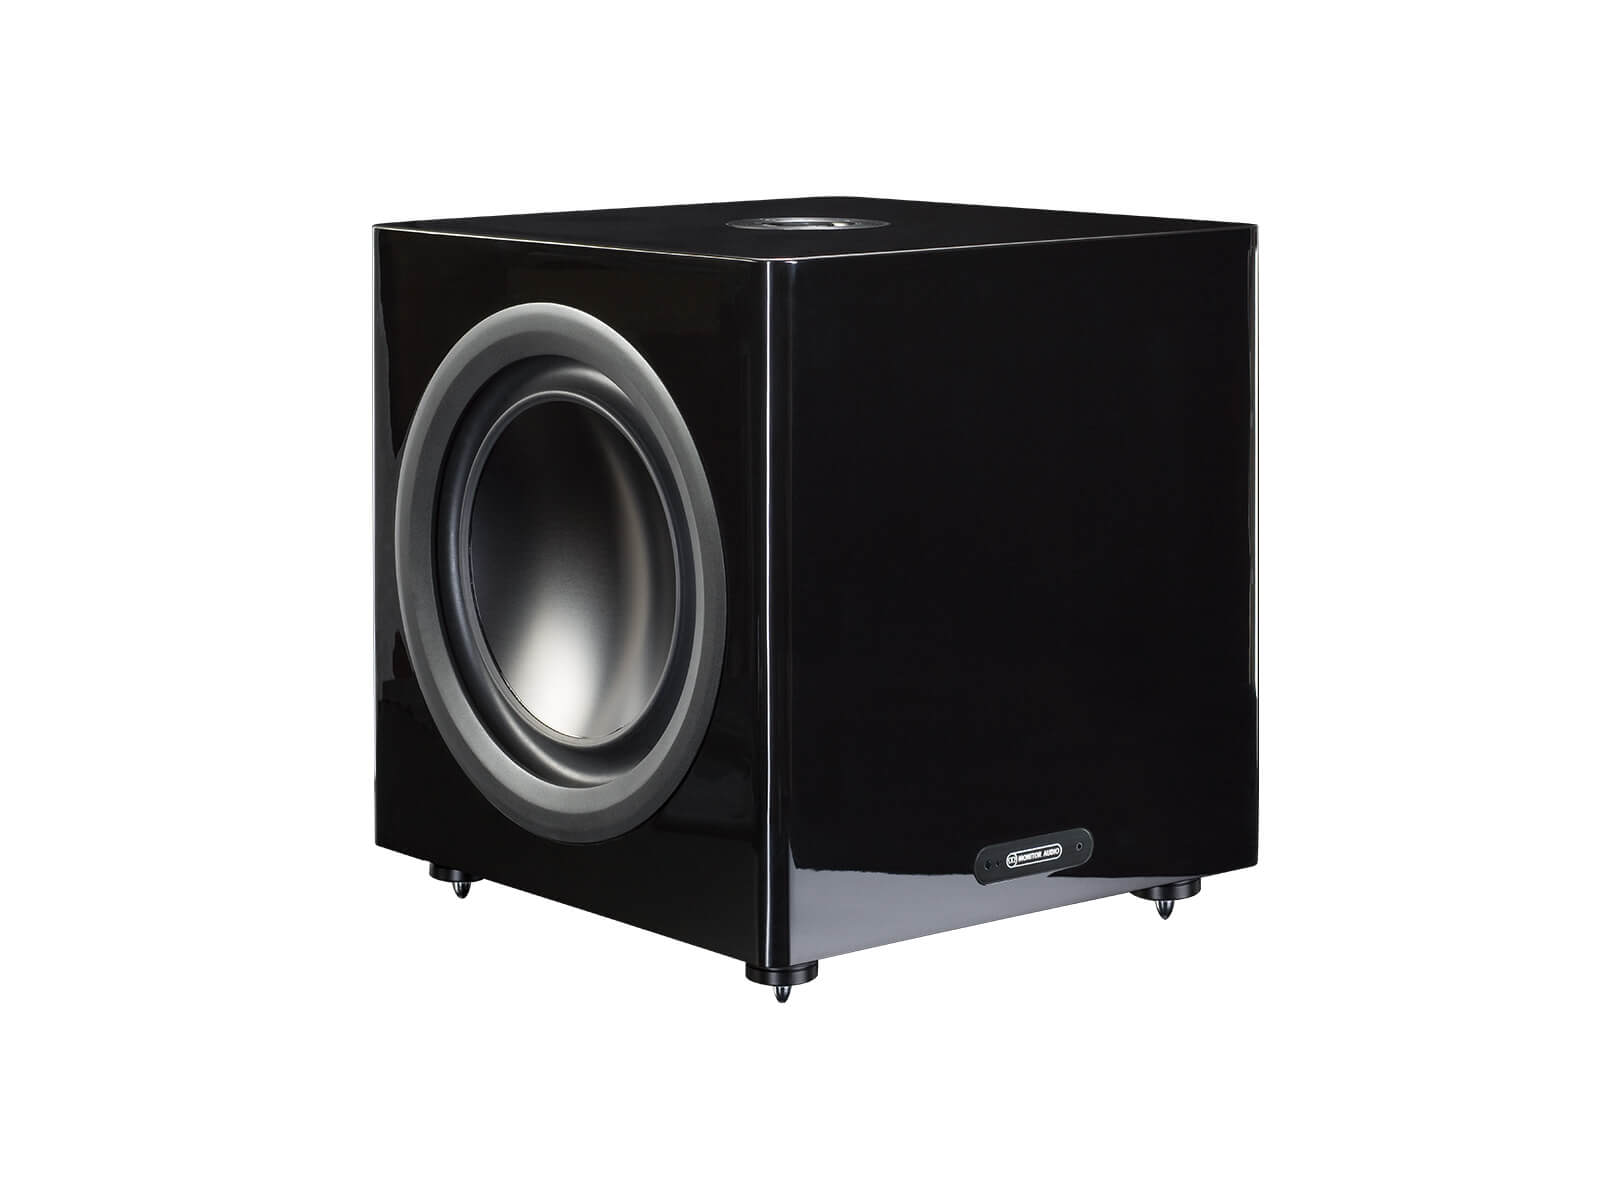 Platinum PLW215 II, subwoofer, with a piano black lacquer finish.